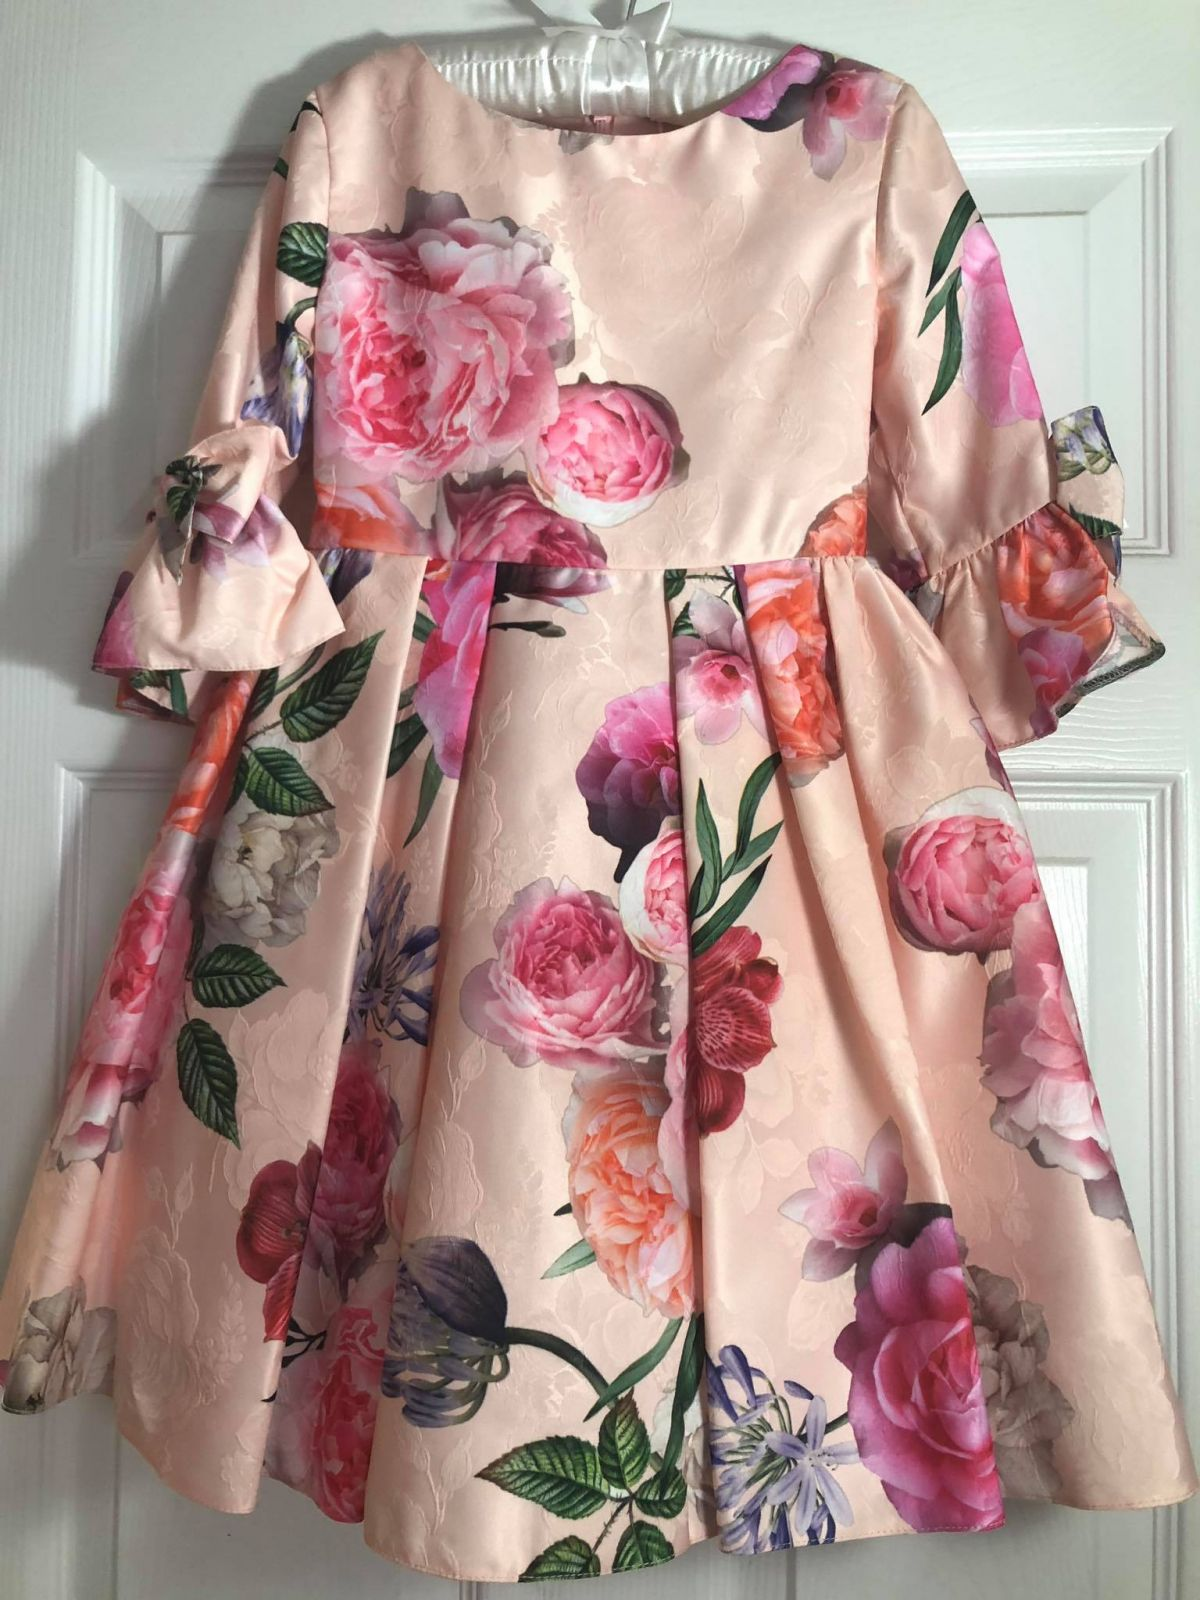 David Charles Pink Peony dress on a hanger